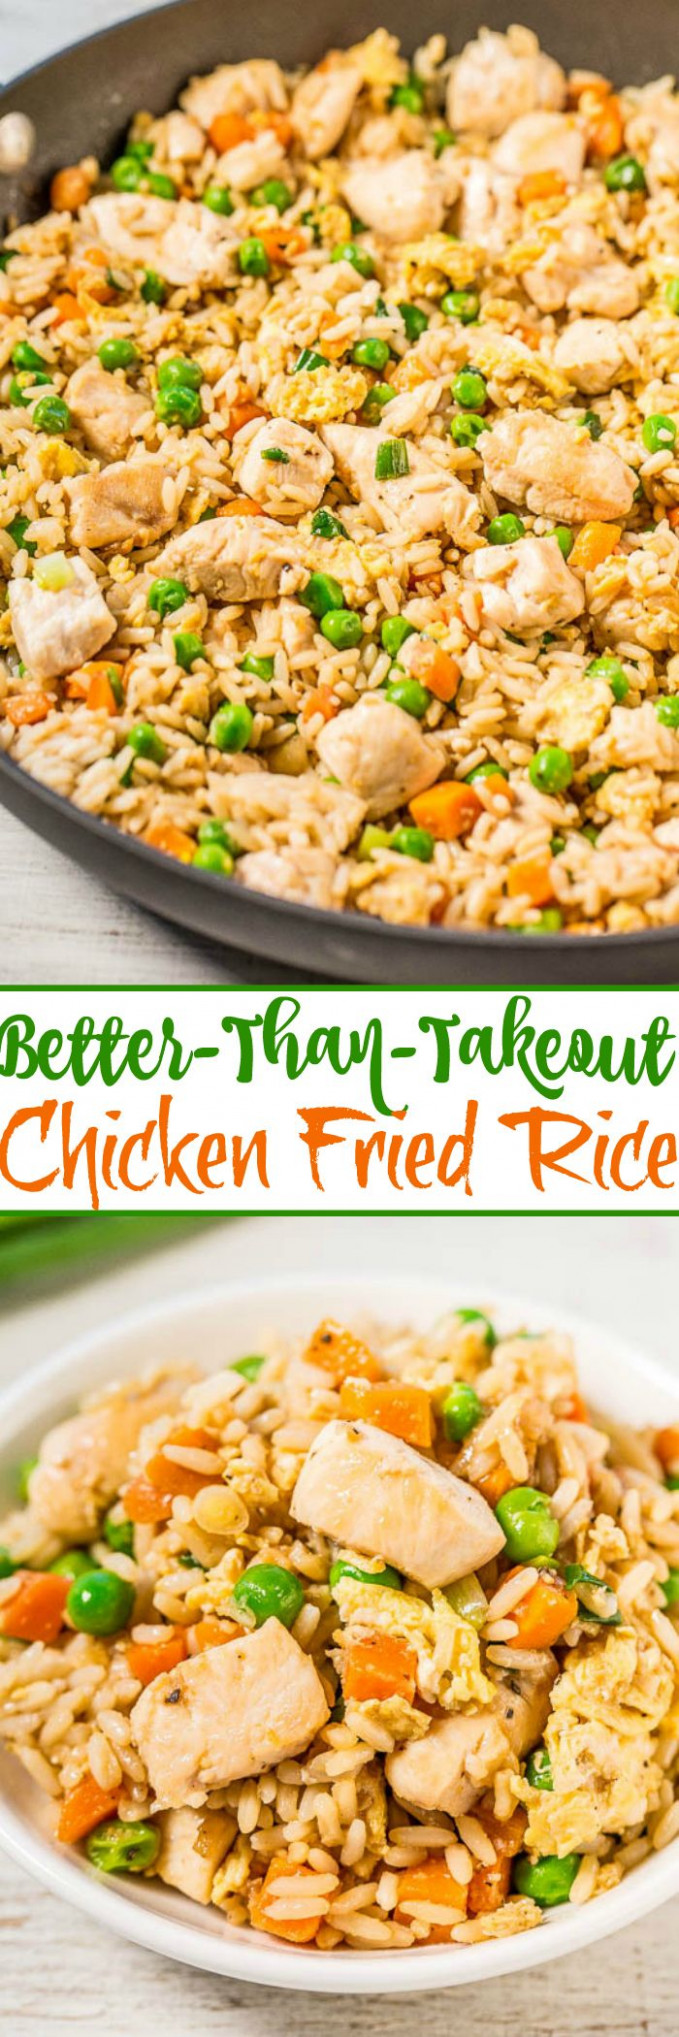 Easy Better-Than-Takeout Chicken Fried Rice | Recipe ..